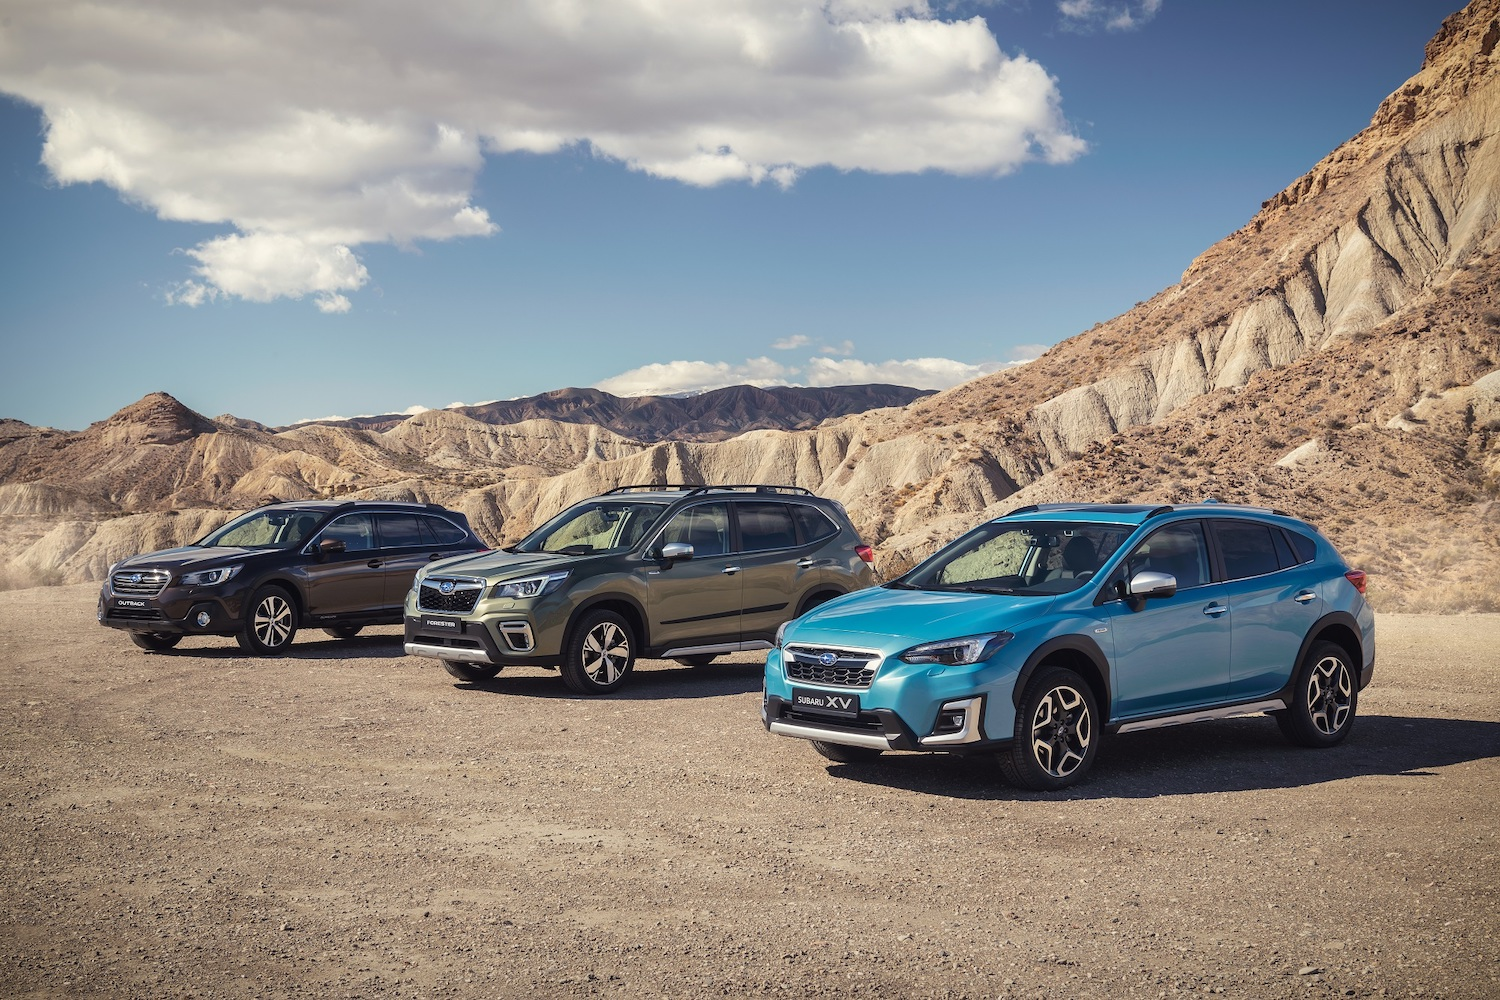 Car News | Subaru Ireland sets up for online sales takeover | CompleteCar.ie